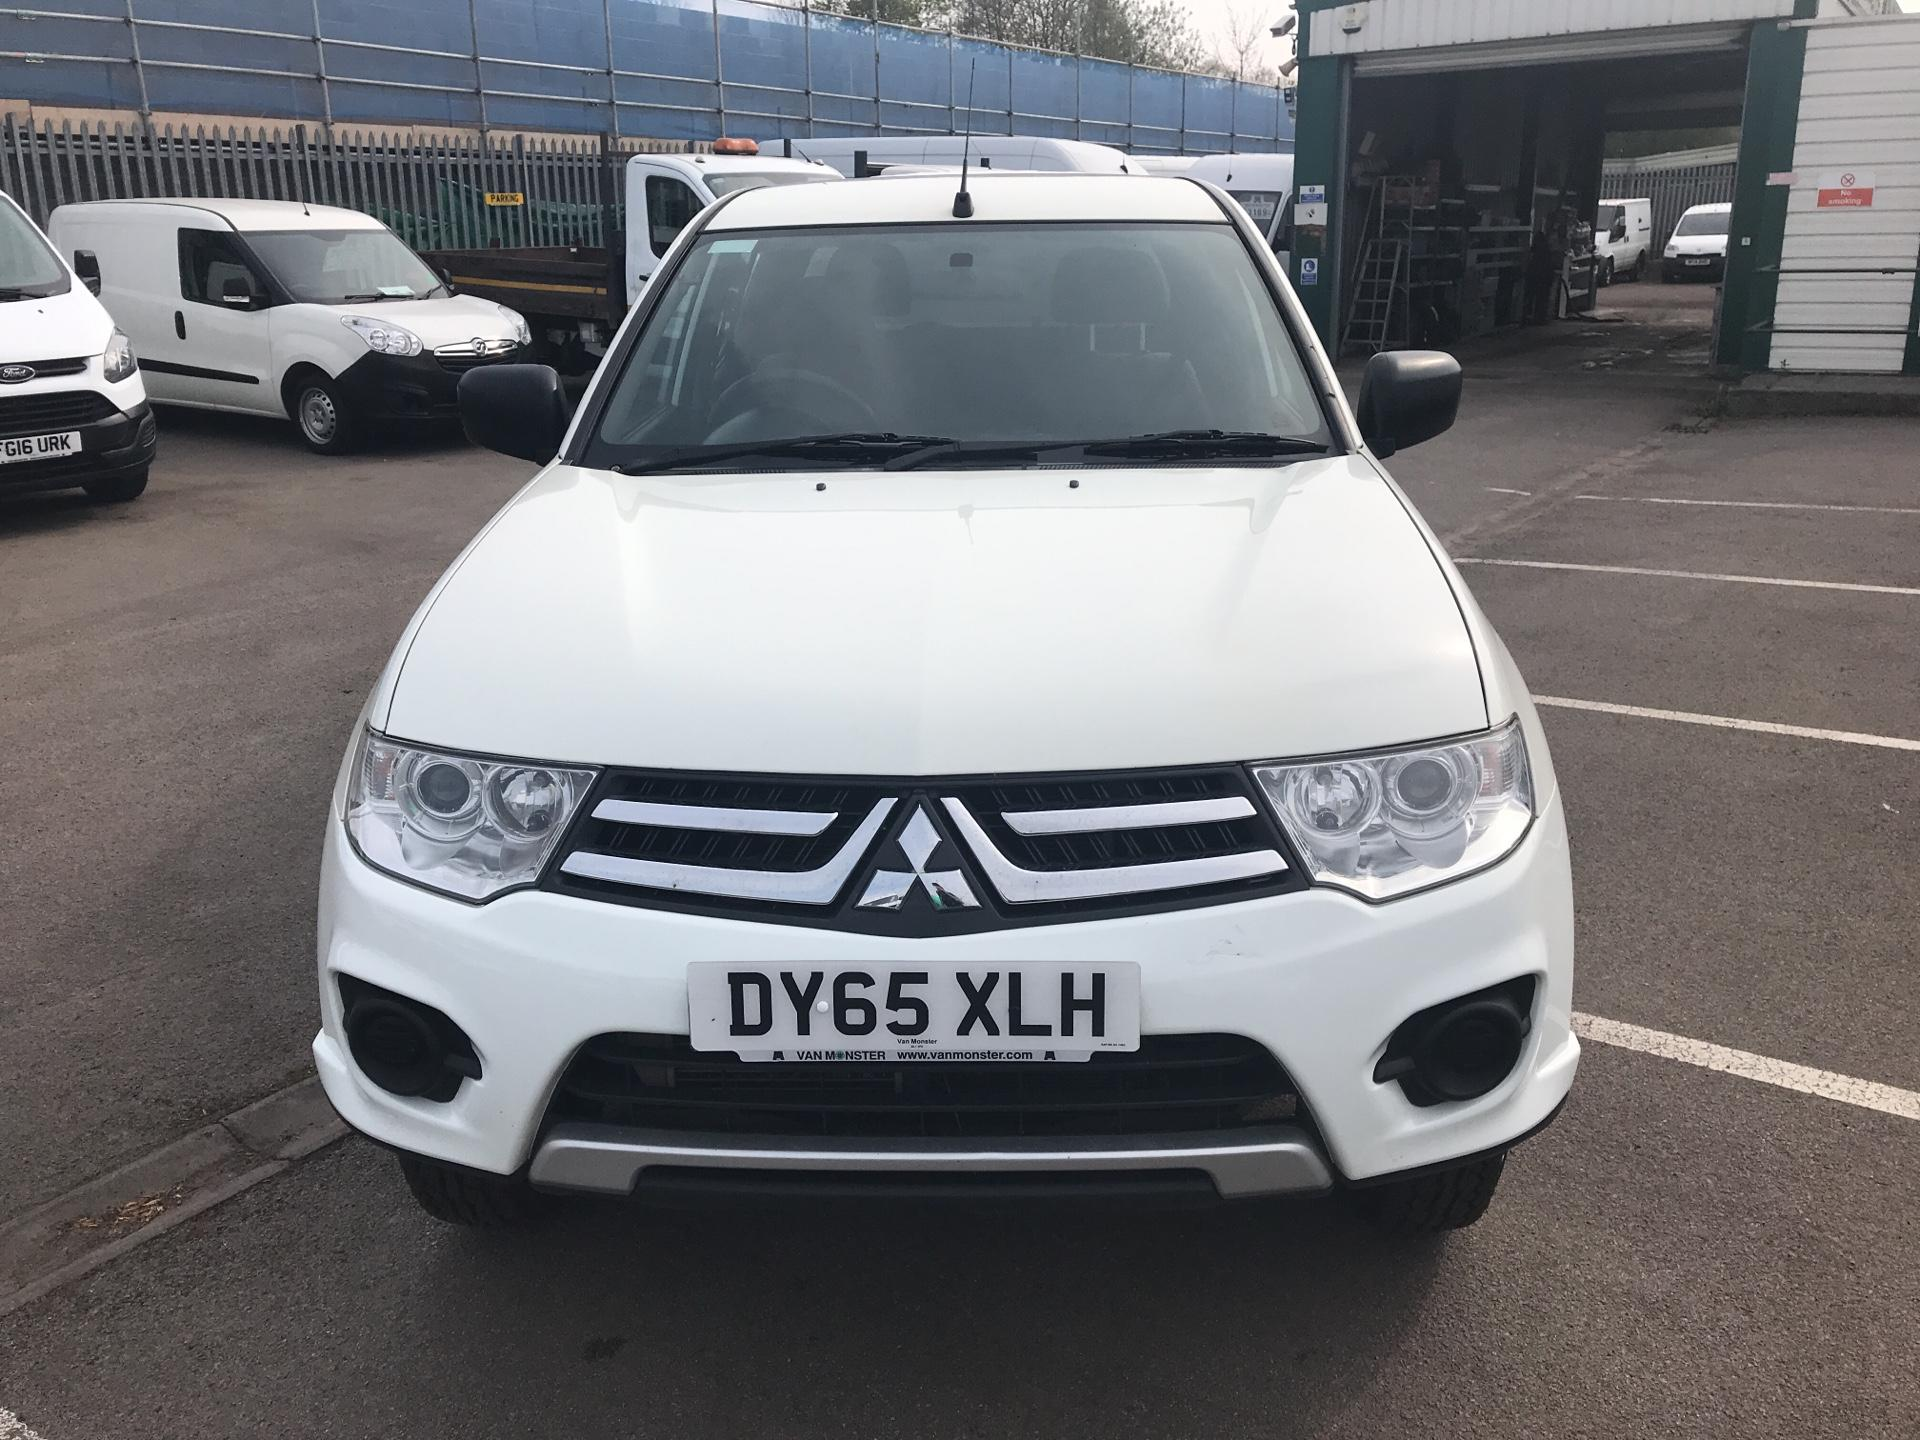 2015 Mitsubishi L200 Double Cab Di-D 4Life 4Wd 134Bhp *VALUE RANGE VEHICLE CONDITION REFLECTED IN PRICE* (DY65XLH) Image 8